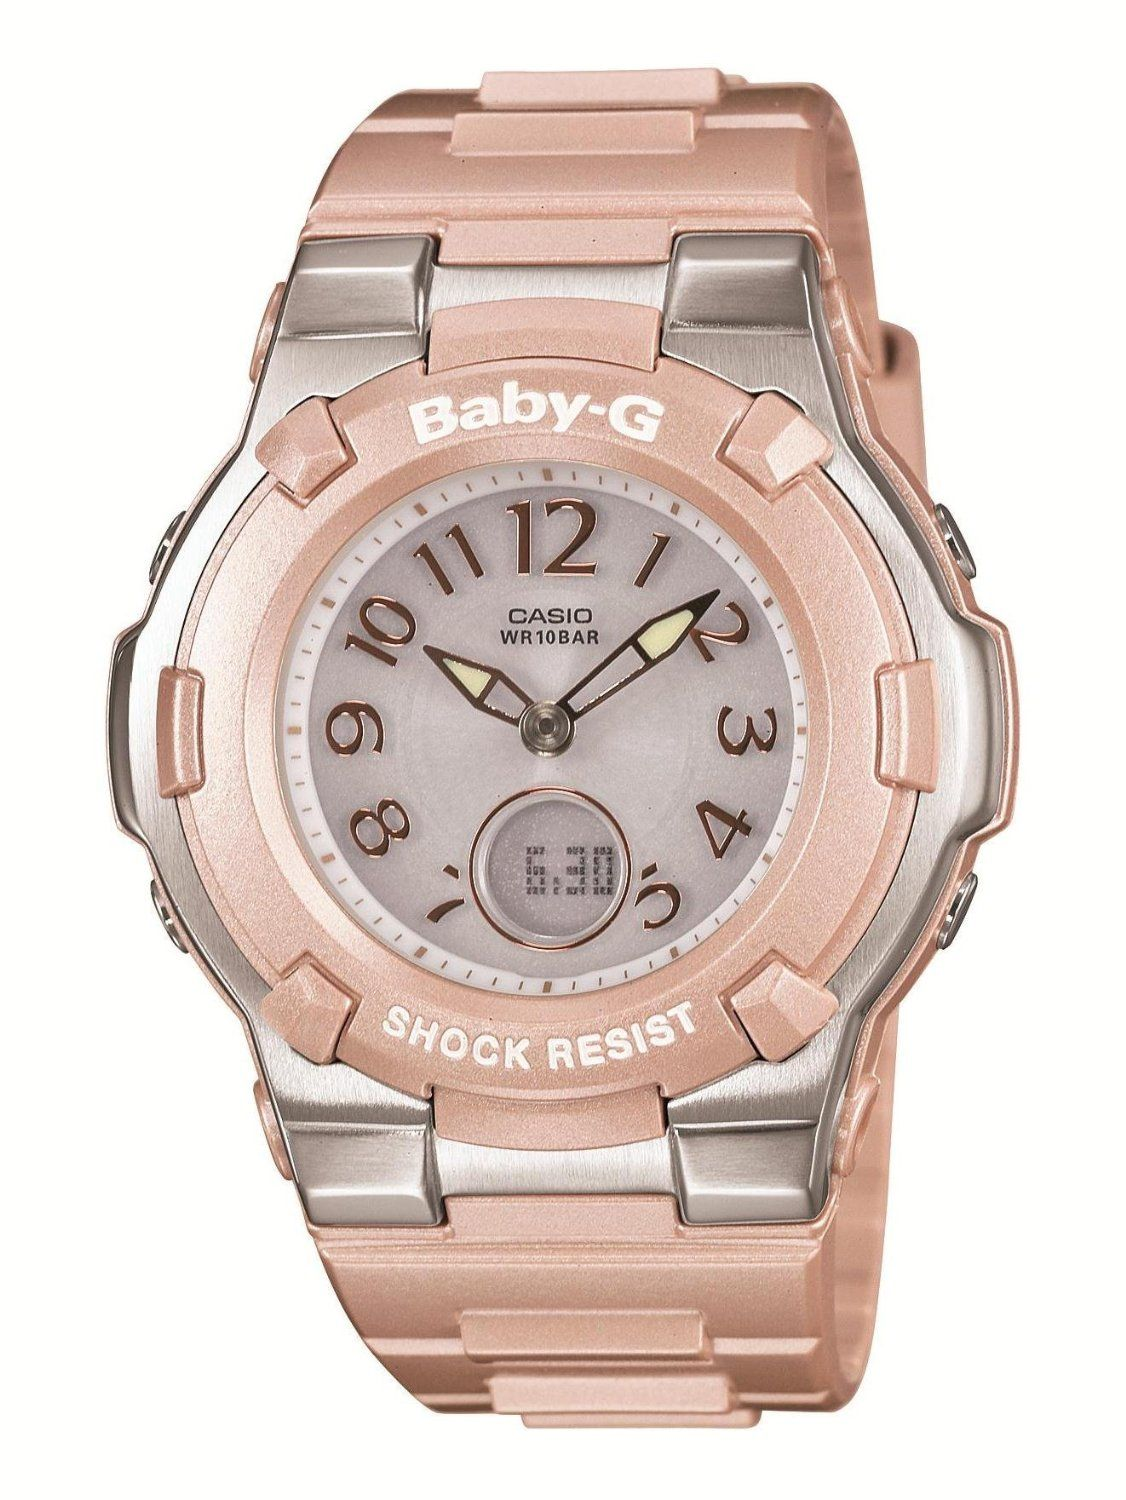 casio baby g shock resist lady 39 s solar charged watch. Black Bedroom Furniture Sets. Home Design Ideas